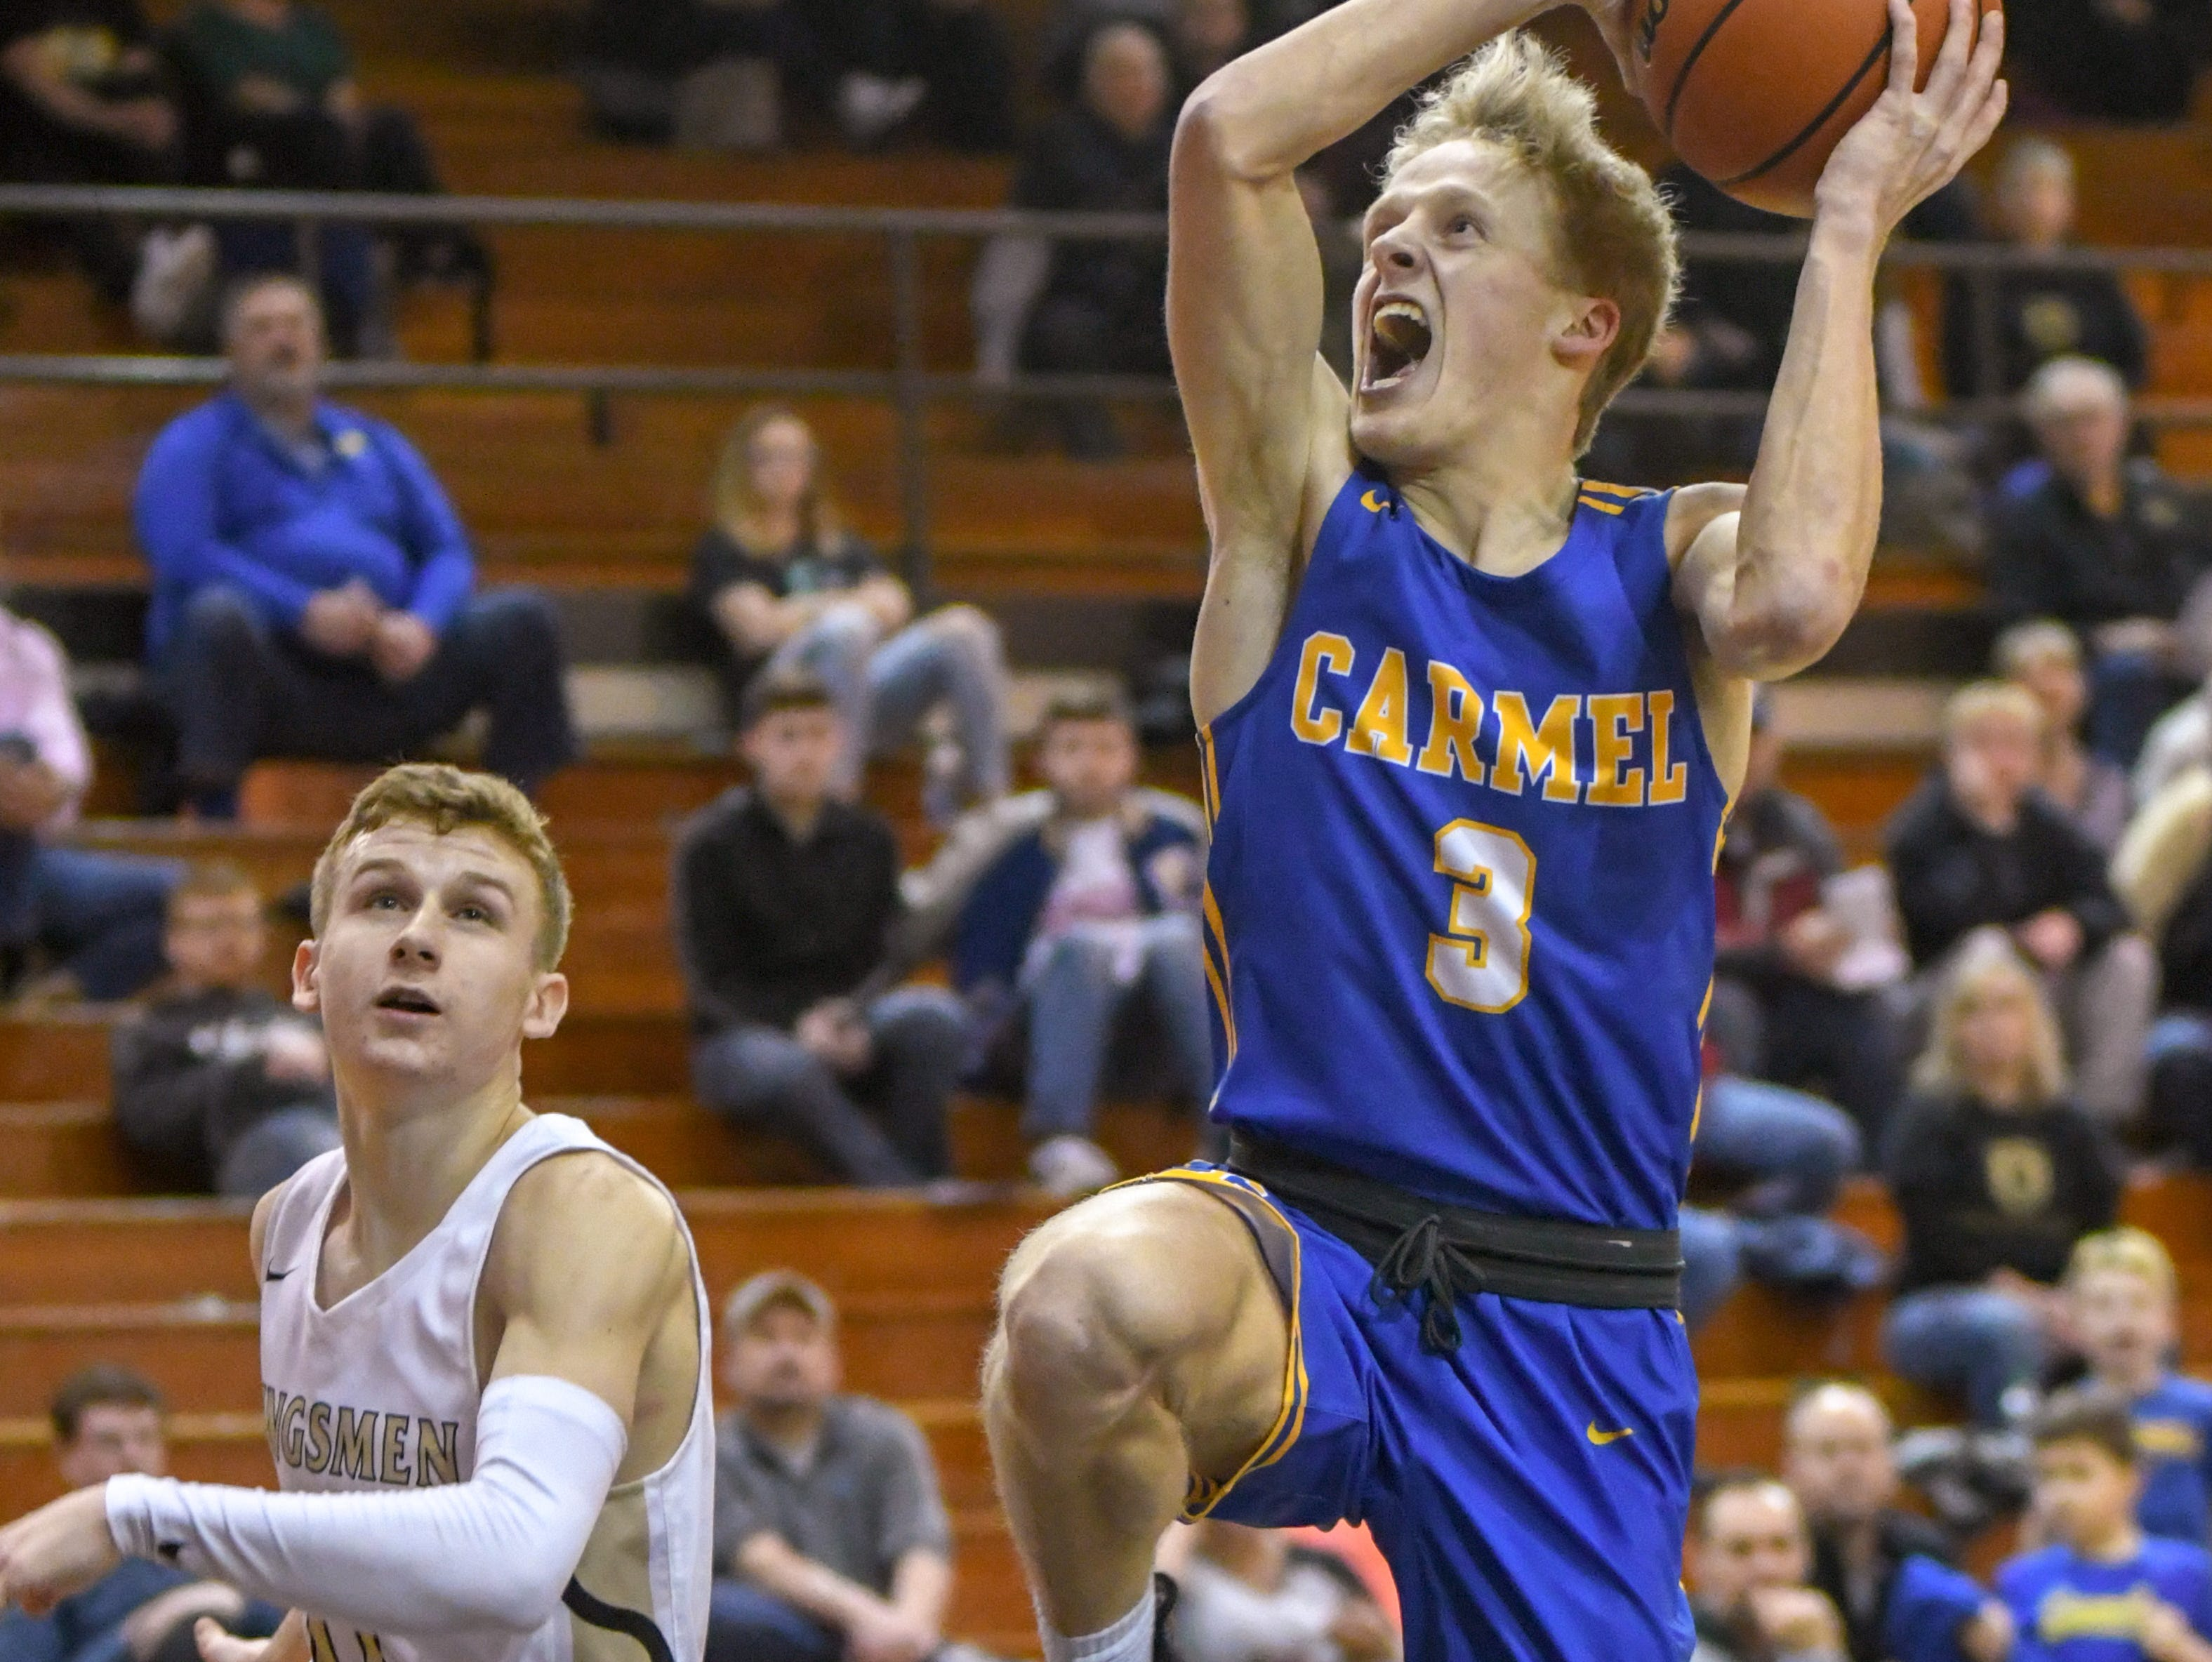 Carmel's Karsten Windlan drives the lane for a basket in the Greyhounds 71-42 win over Penn High School in Lafayette on Saturday March 16, 2019. Carmel moves on to the state finals after winning the 4A semi-state today.